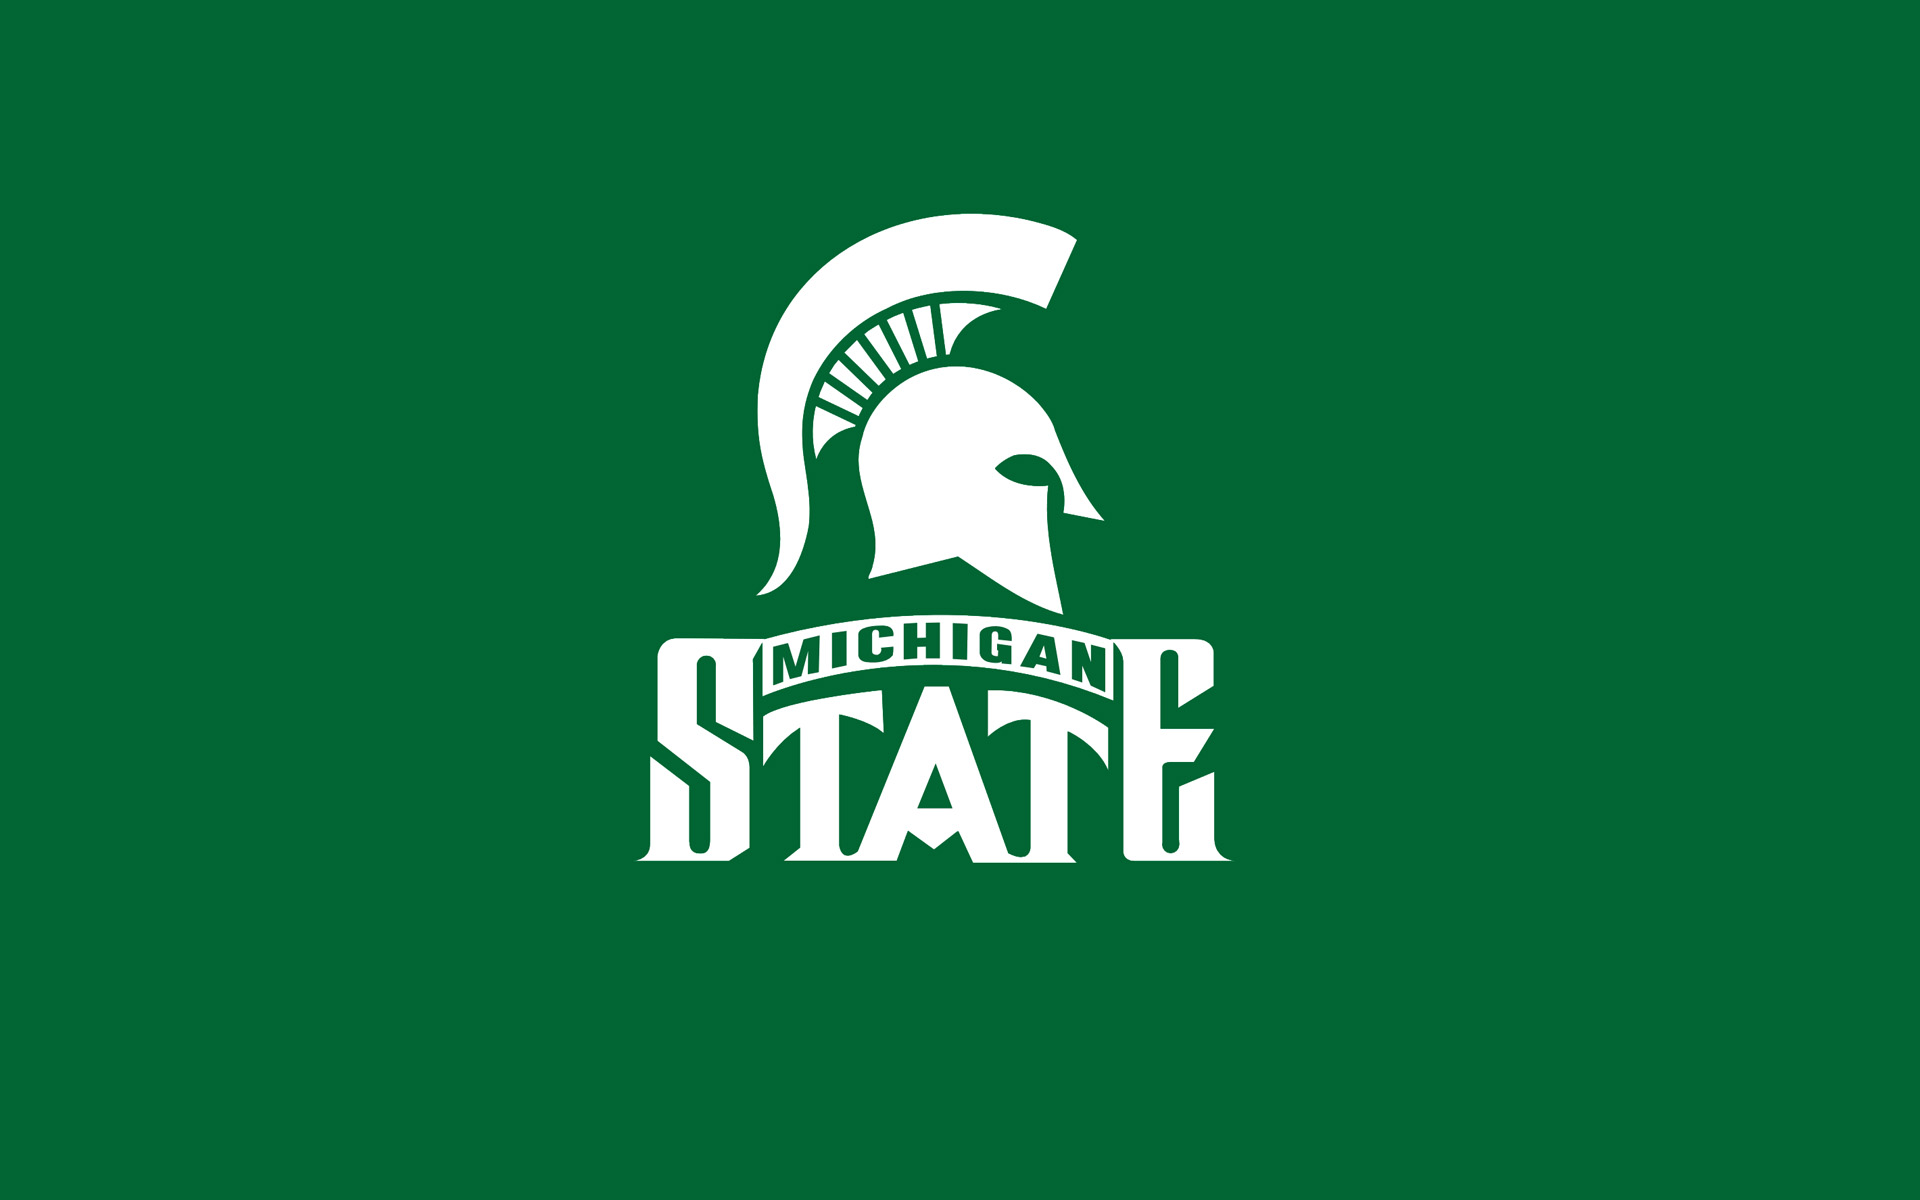 Michigan State Wallpaper 21288